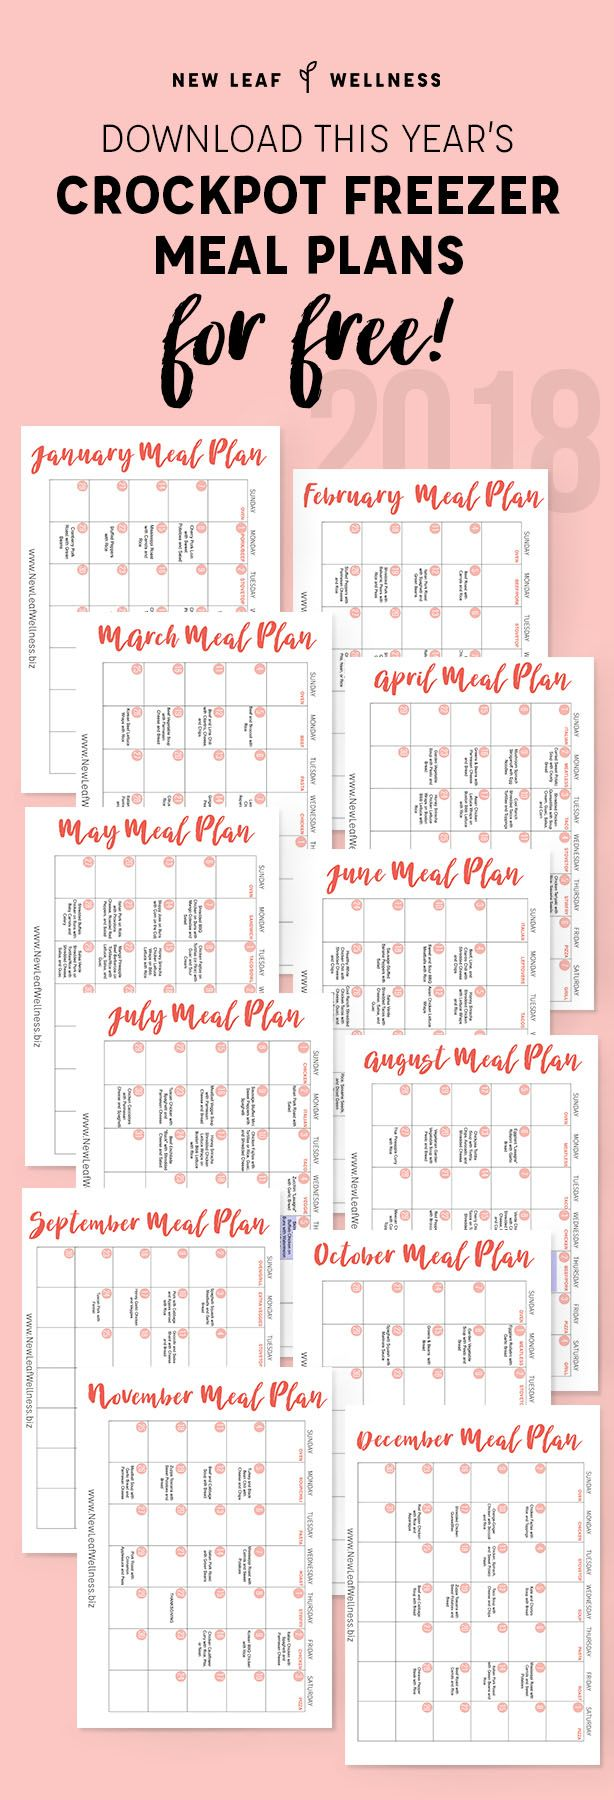 Download a FREE year's worth of printable Crockpot Freezer Meal Plans. Psst! Looking for even more freezer cooking meals? Be sure to check out the extensiveNew Leaf Wellness eCookbook Collection! It has something for everybody — even those with specific …